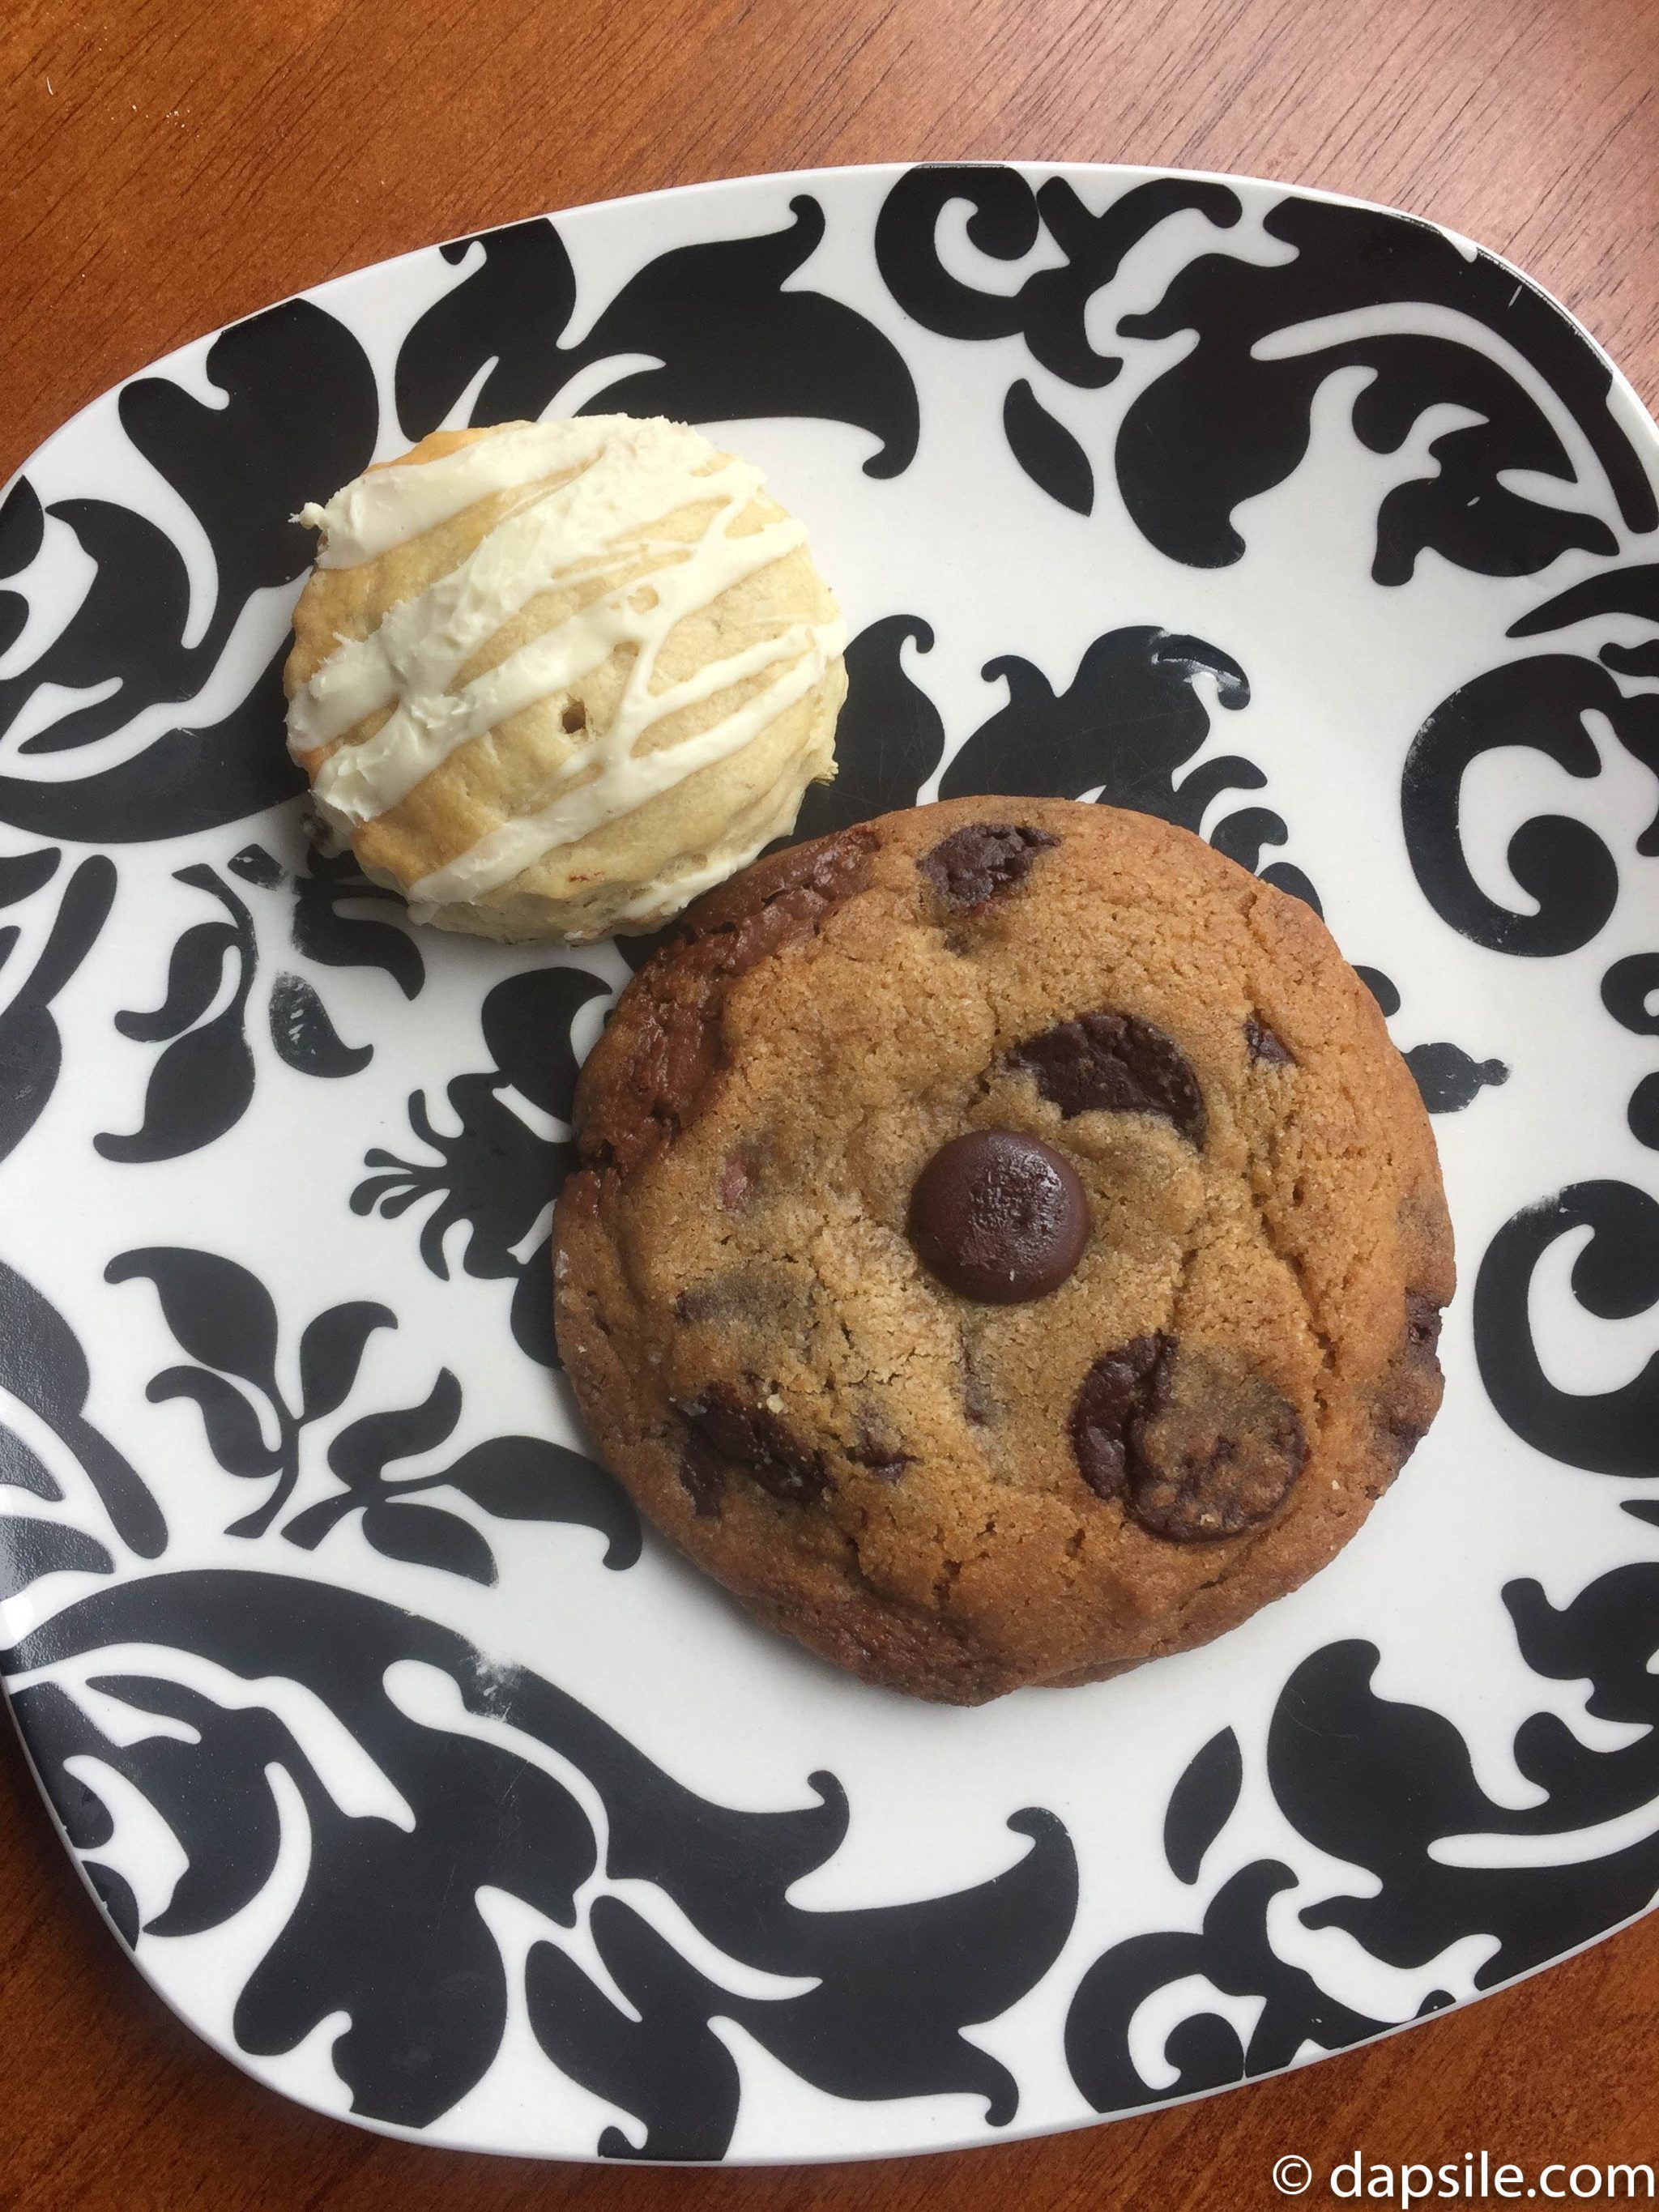 Sweet Somethings chocolate chip cookie and lavender and white chocolate scone